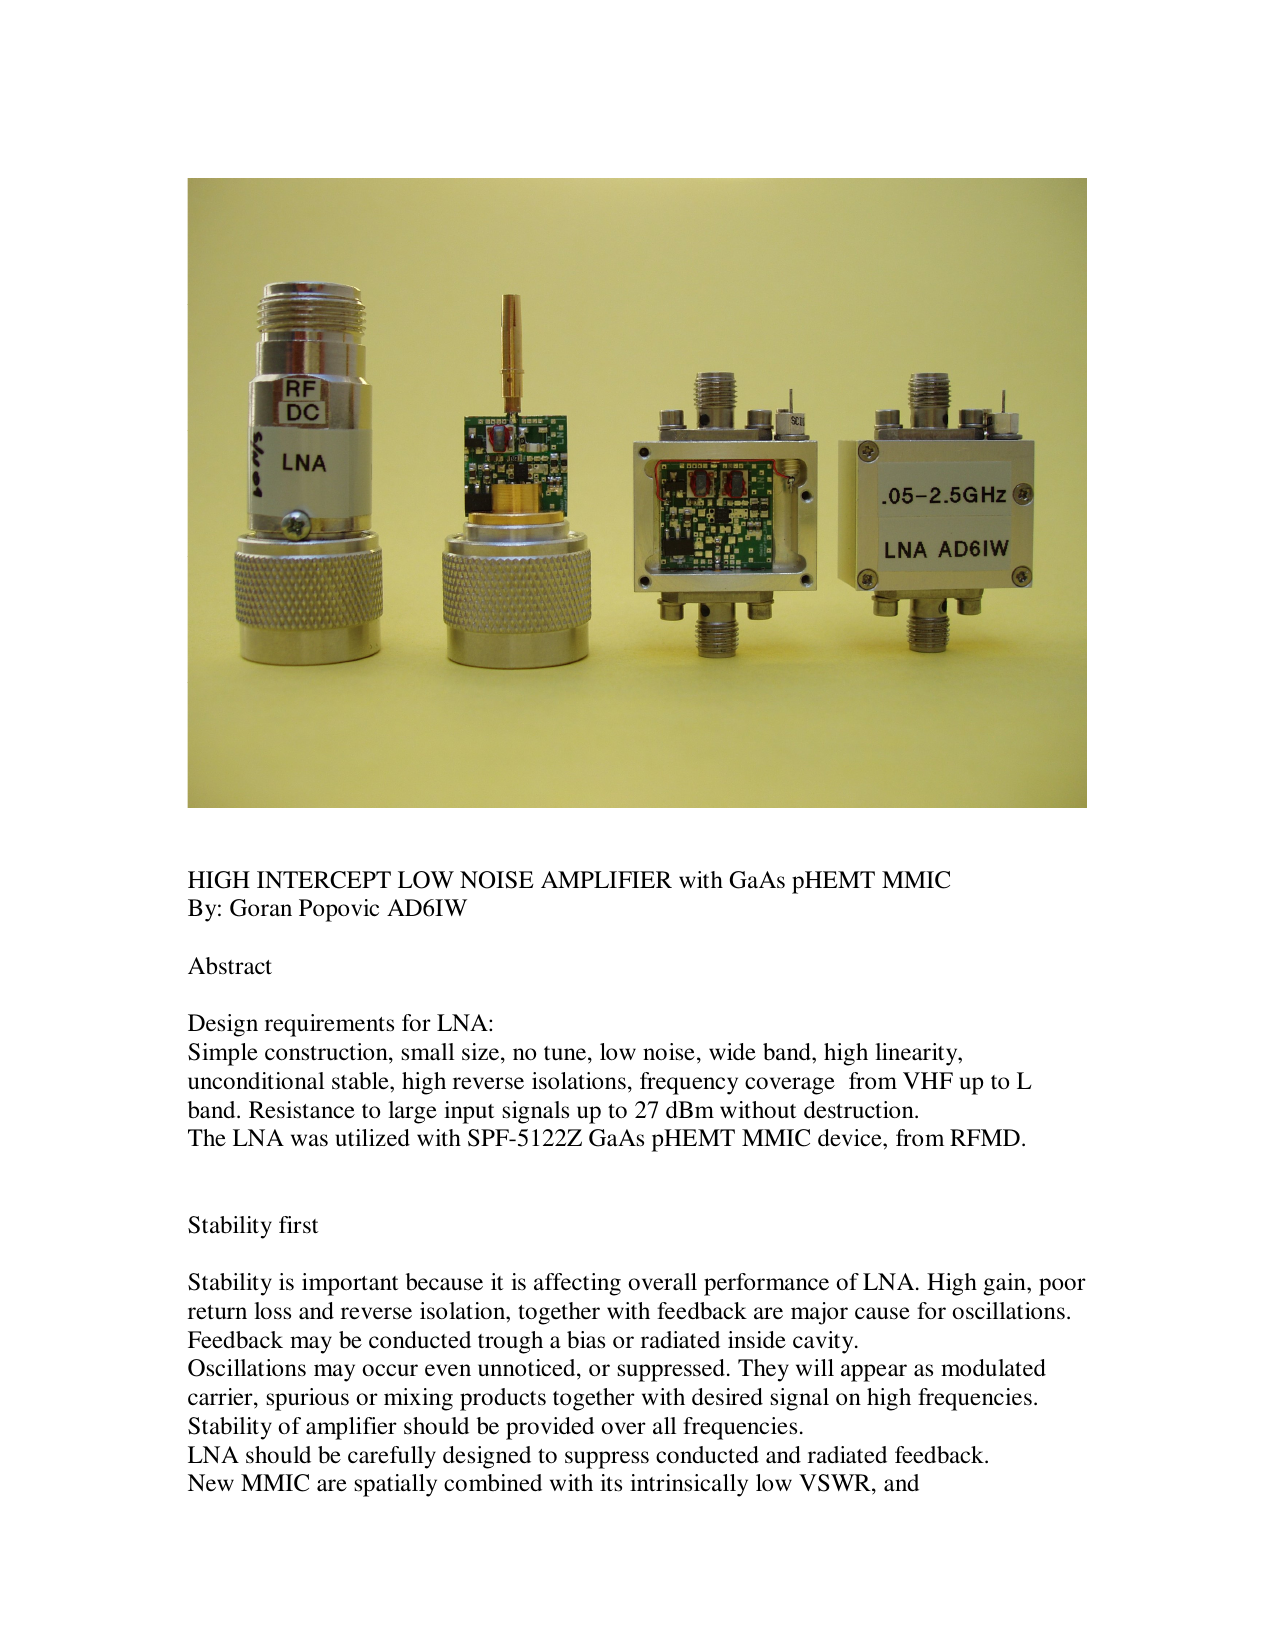 AD6IW HEMT MMIC Wideband LNA article and kit info